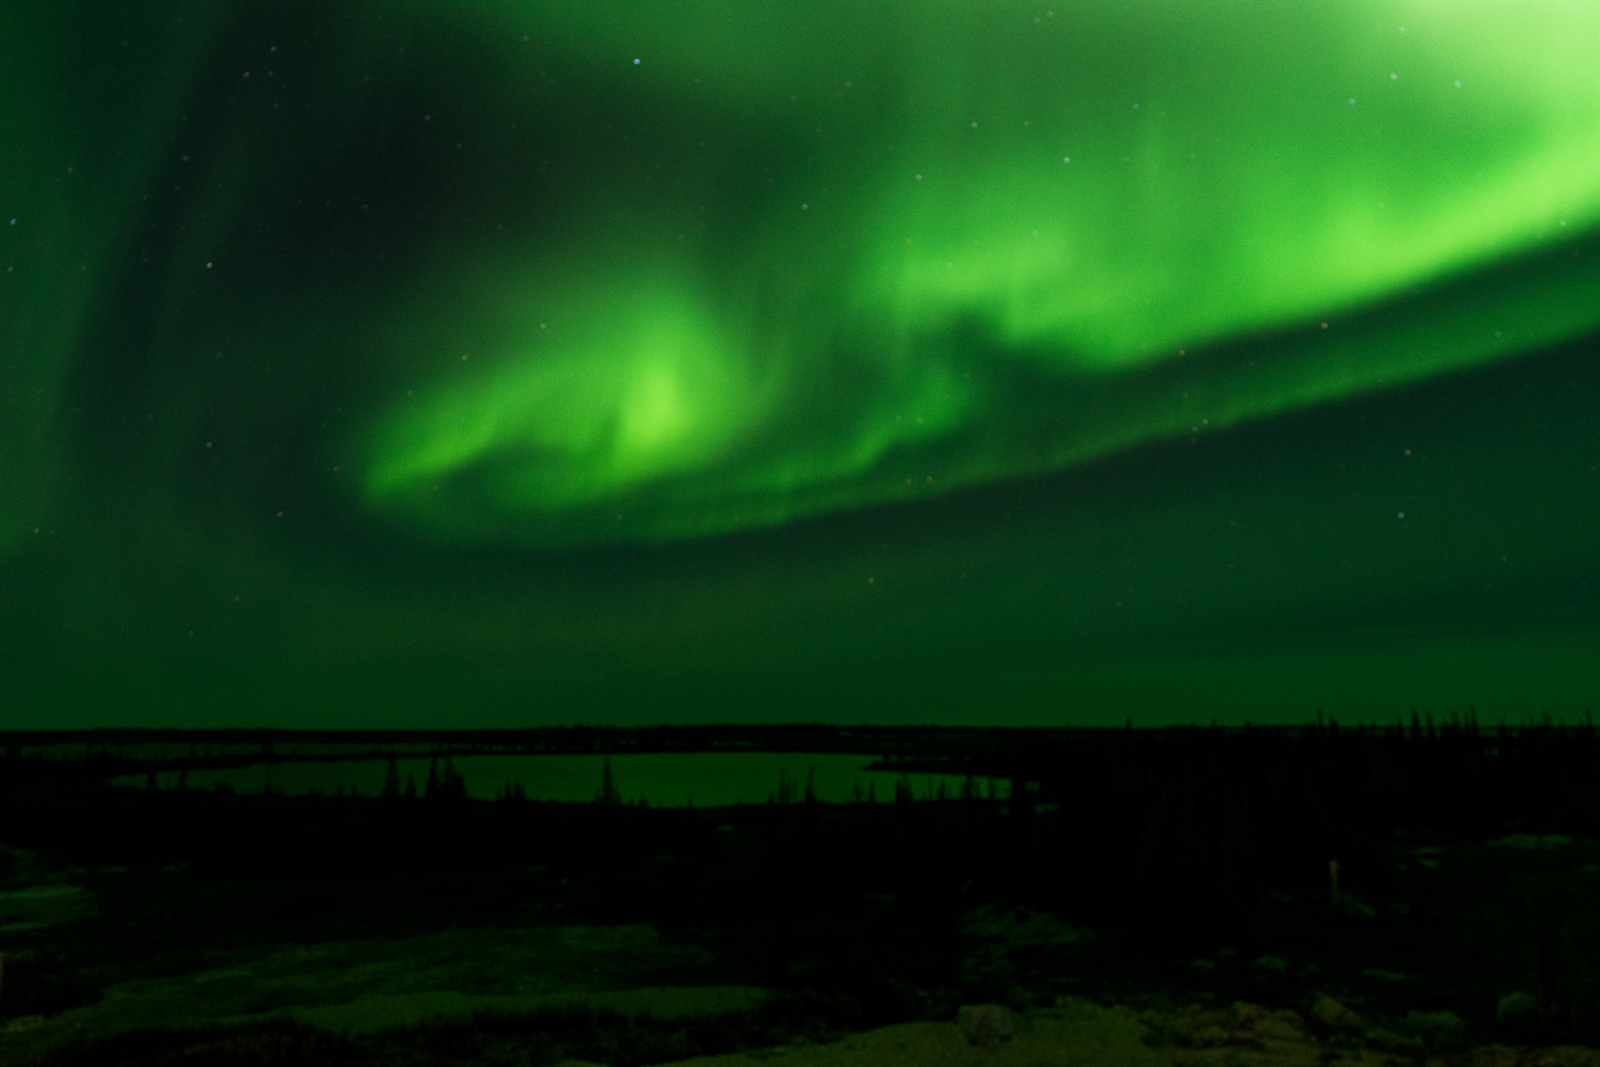 The magnificent aurora borealis observed at the Churchill Northern Studies Centre